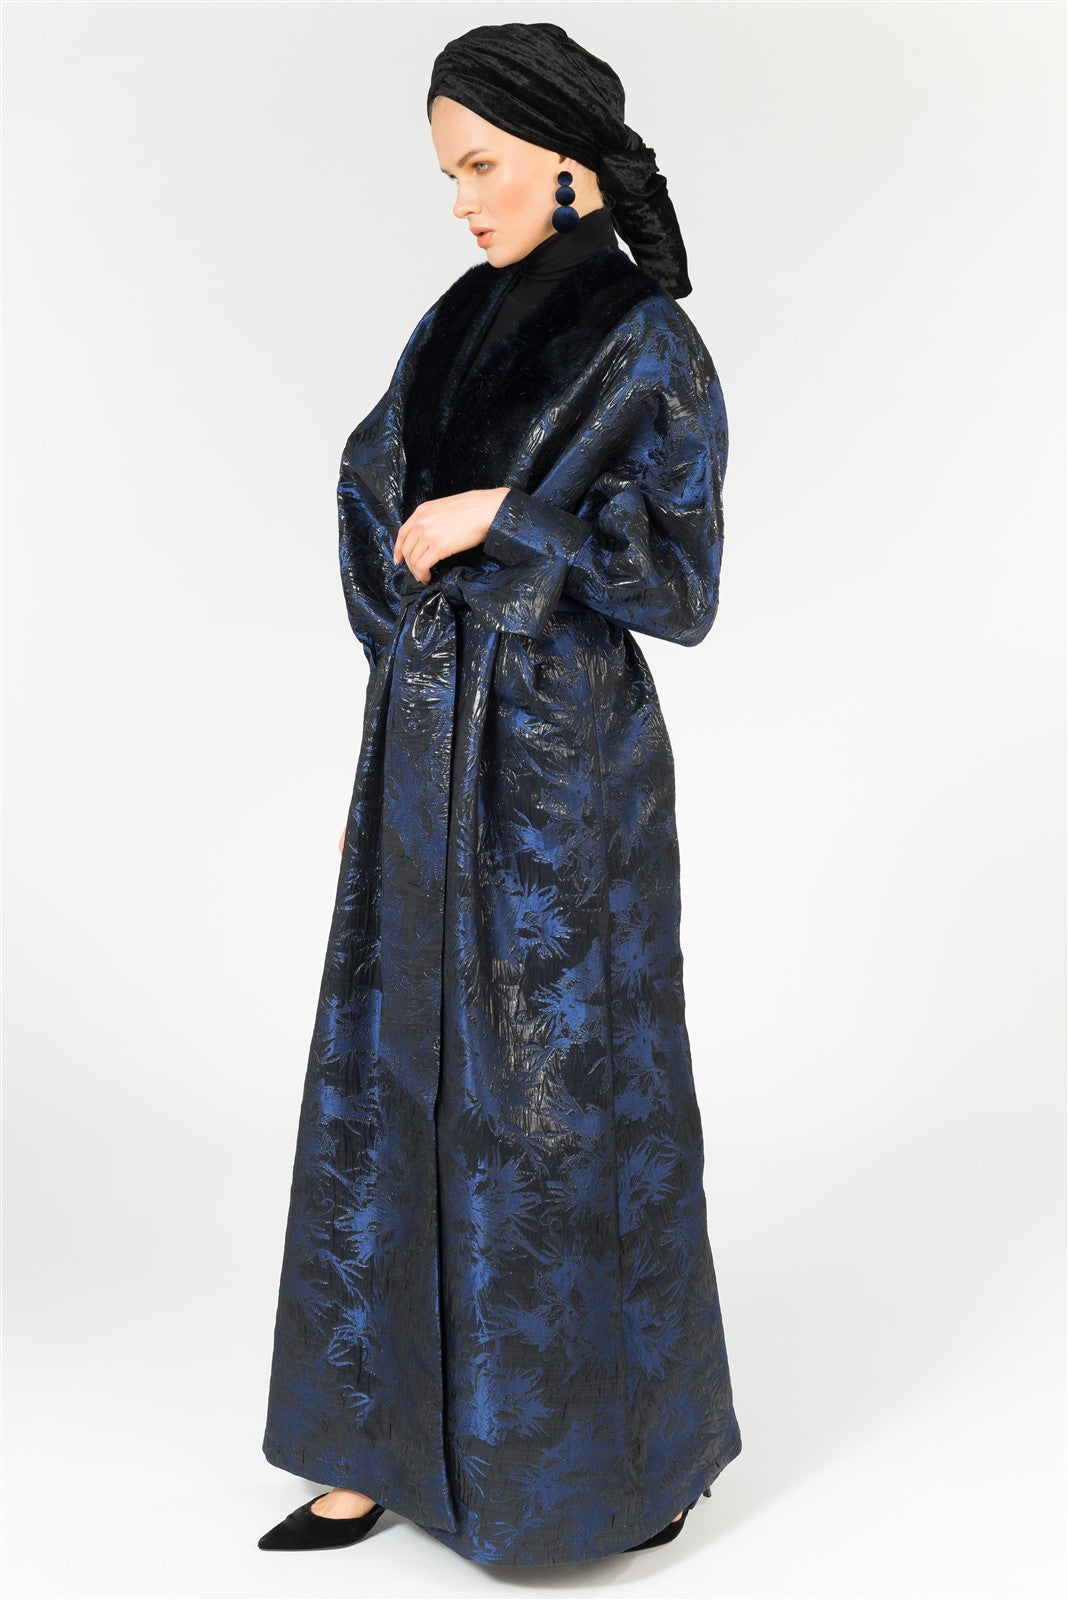 JACQUARD ABAYA WITH FUR COLLAR